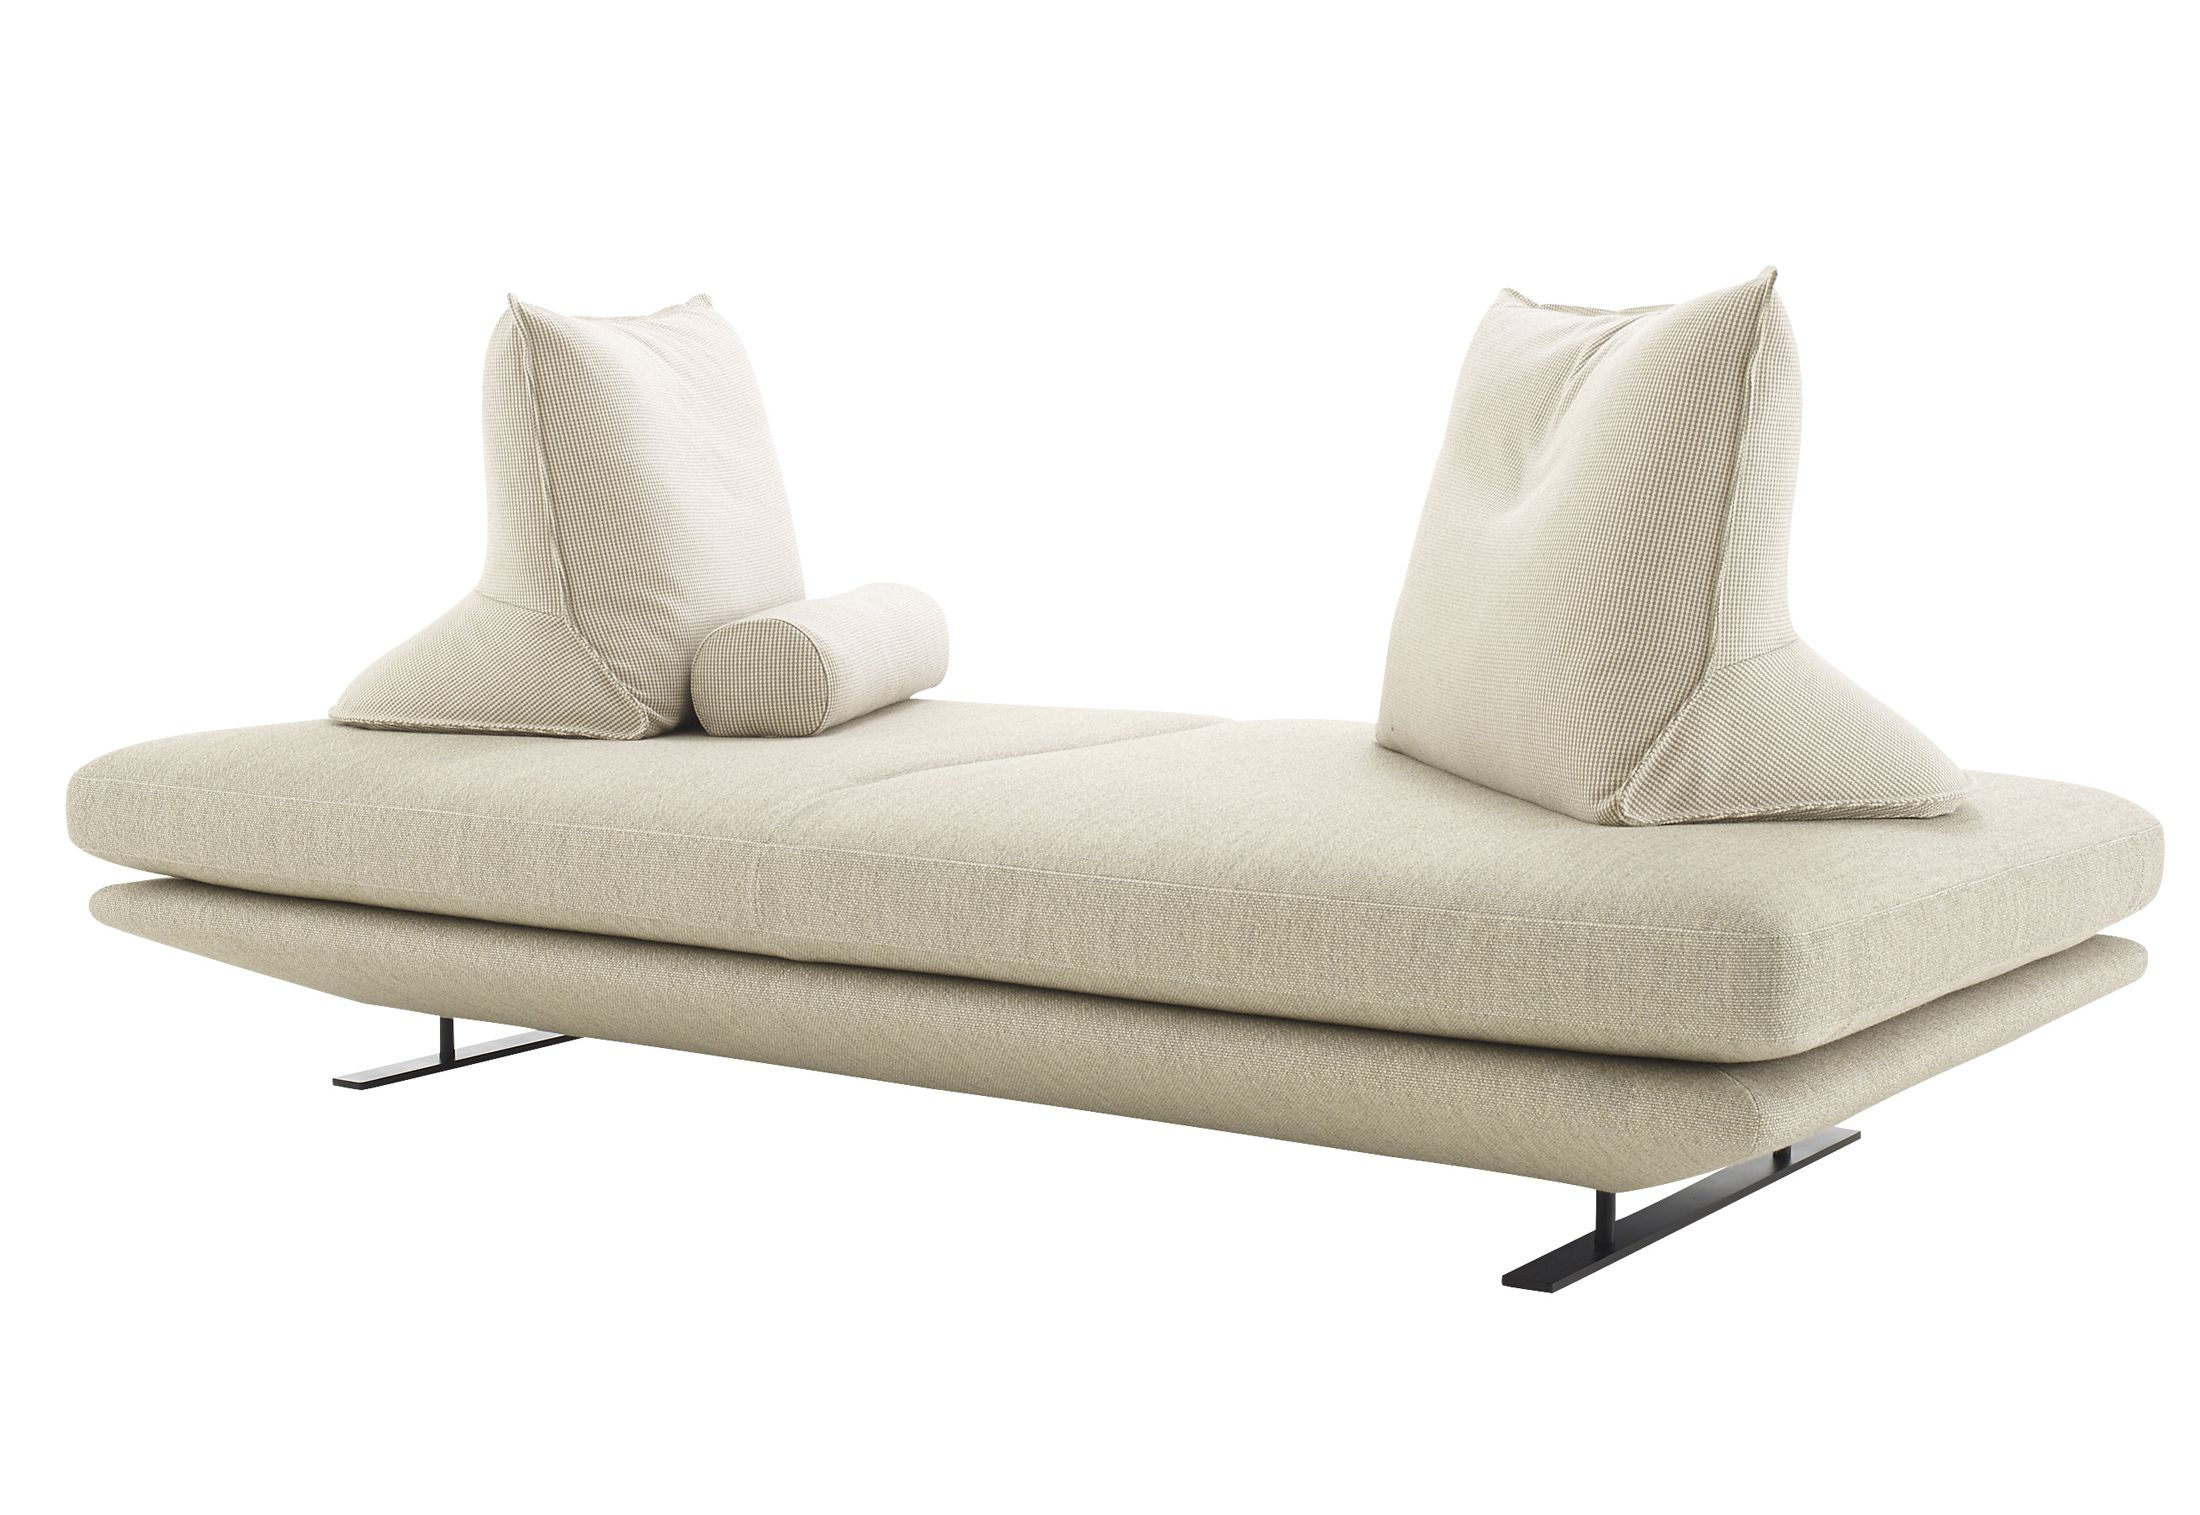 Ligne roset prado sofa furnish furniture pinterest for Ligne roset canape